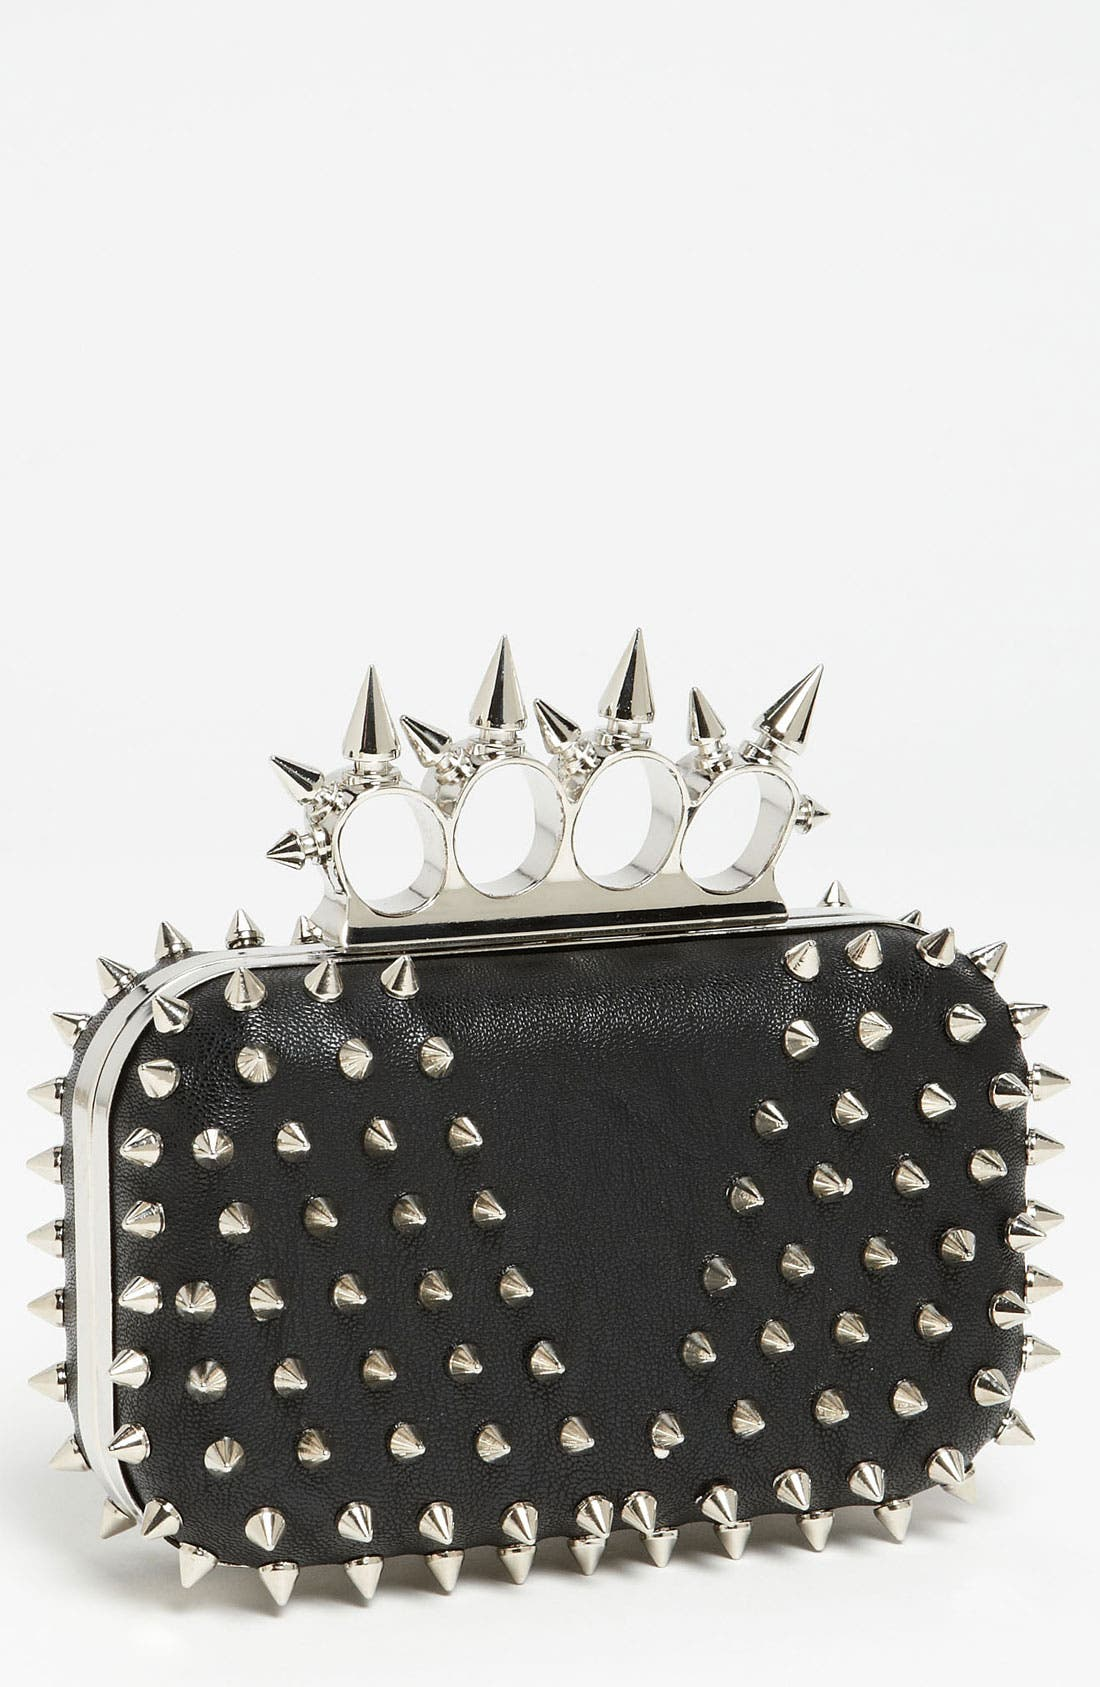 Alternate Image 1 Selected - Natasha Couture 'Small' Spiked Clutch